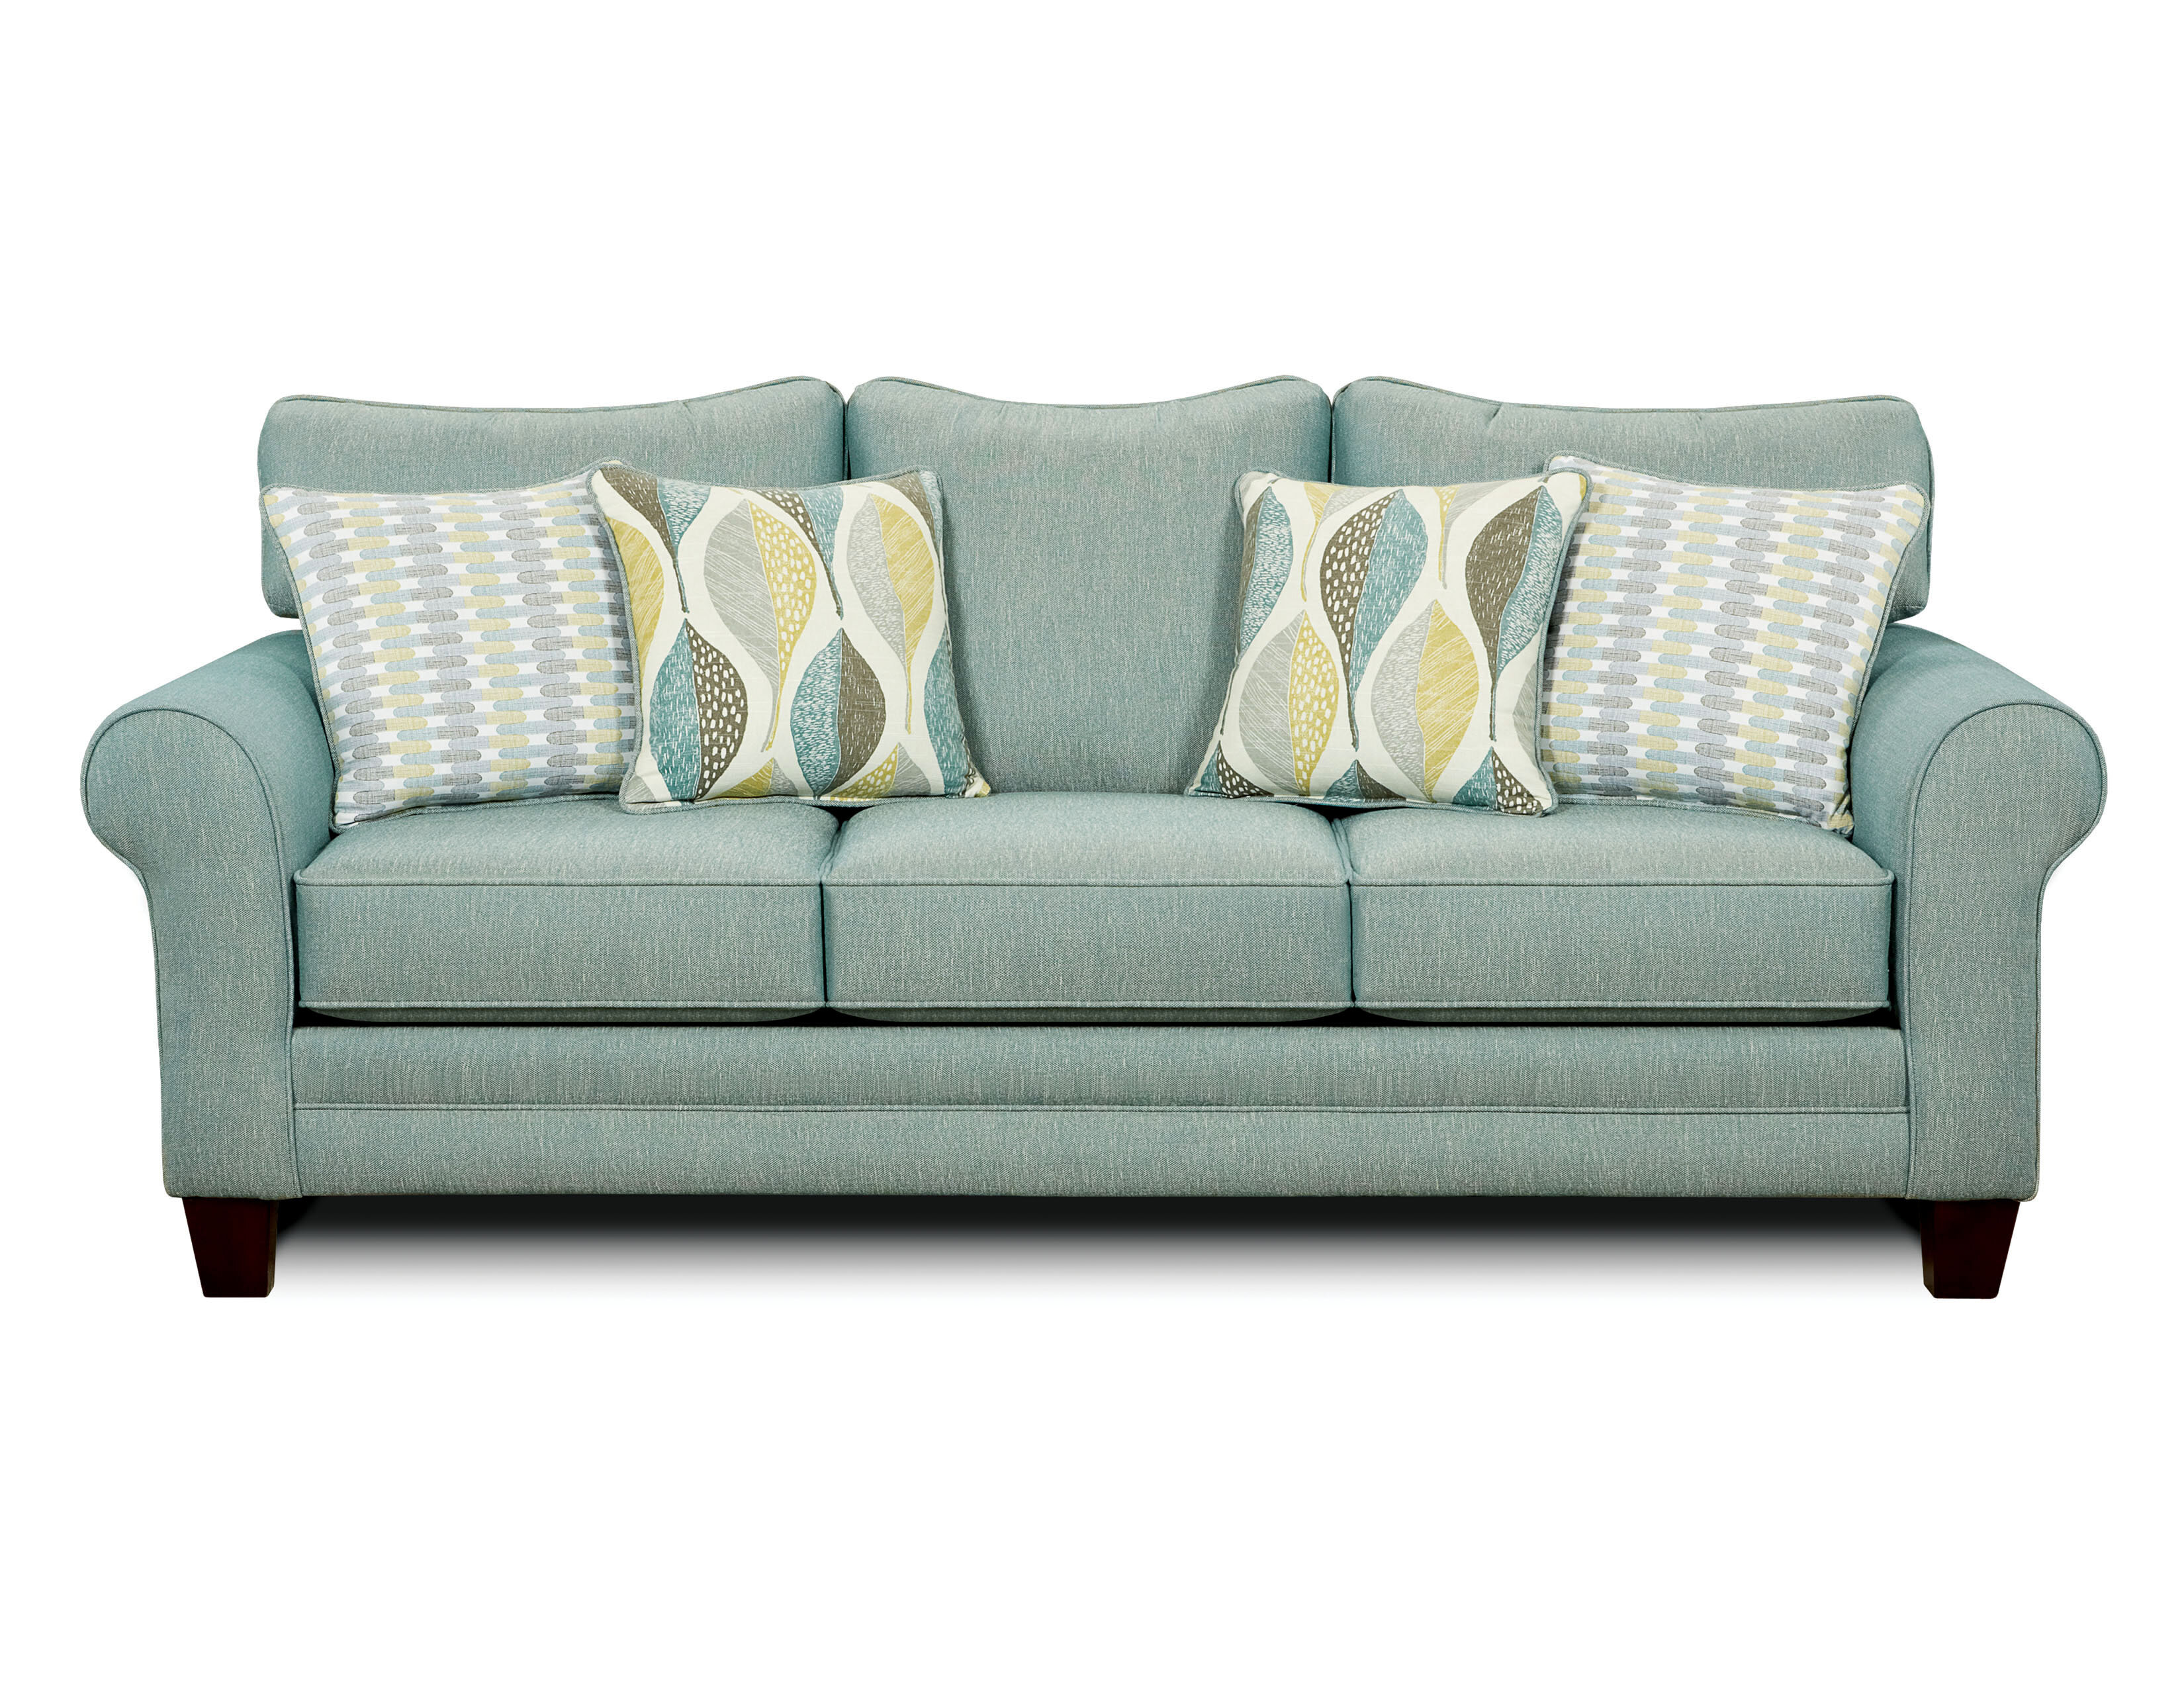 Hokku Designs Primavera Upholstered Sofa Wayfair